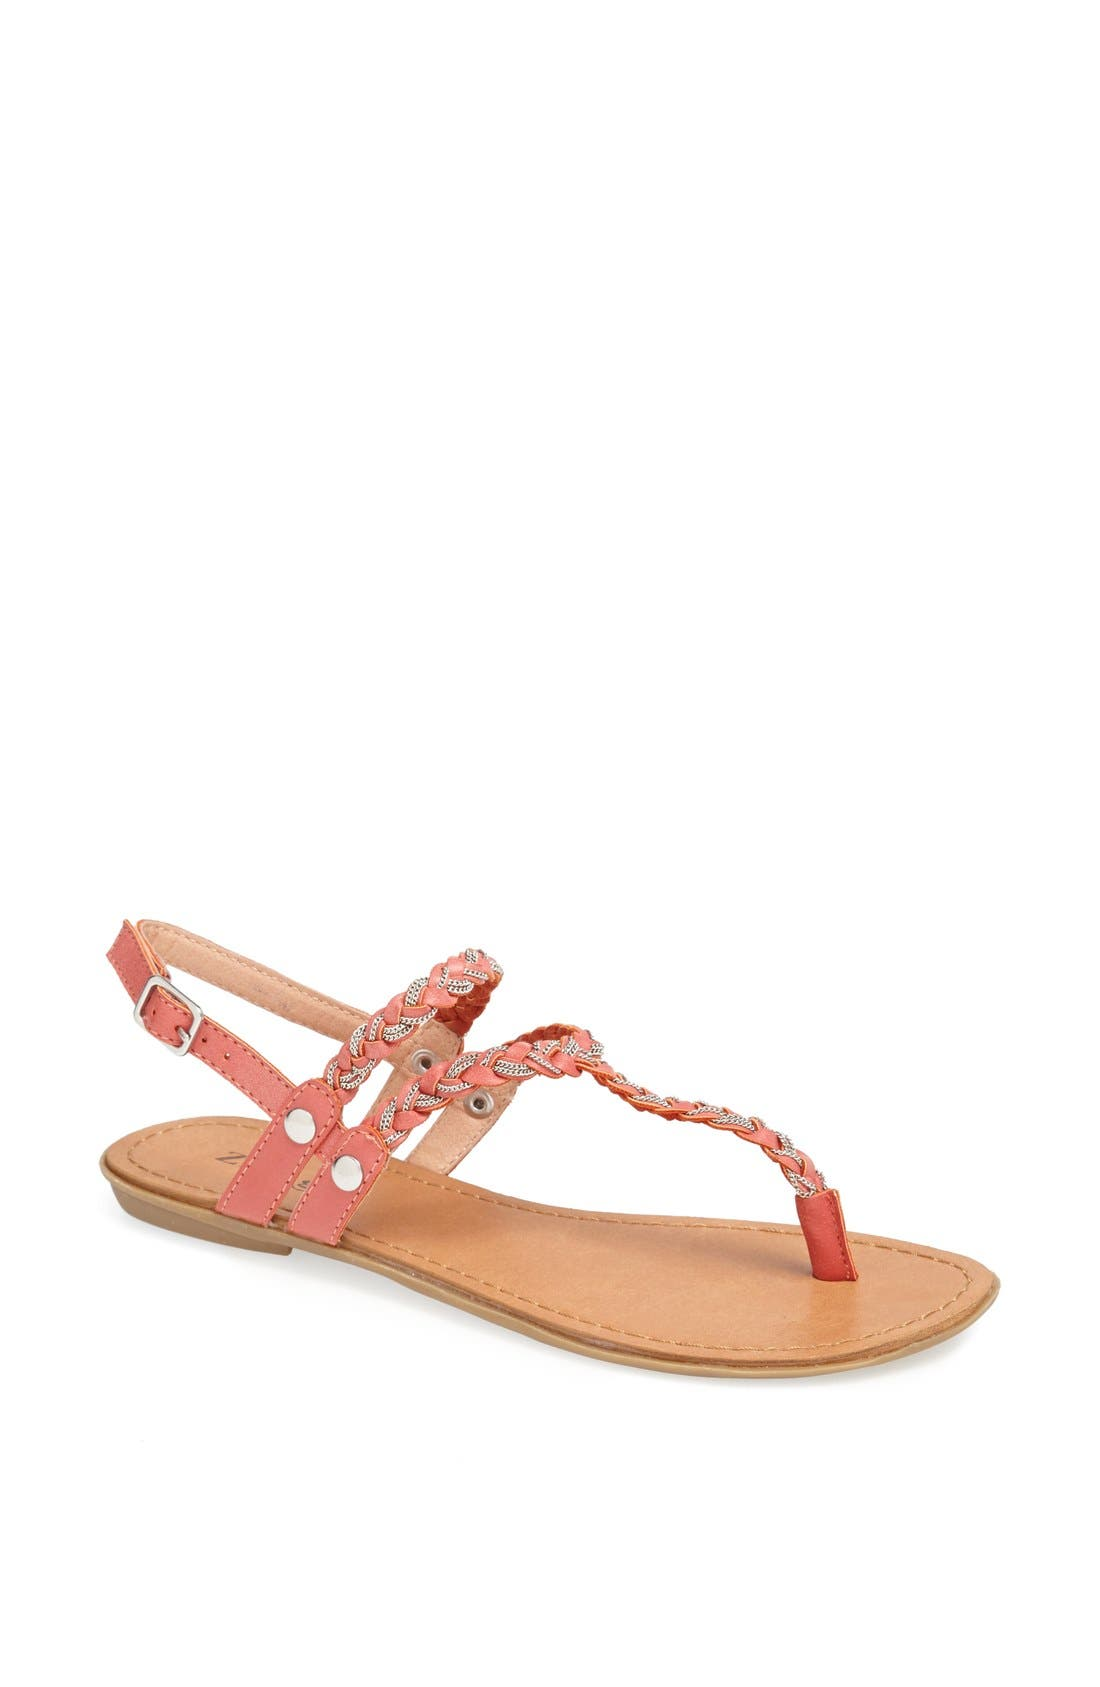 Alternate Image 1 Selected - ZiGi girl 'Articulate' Sandal